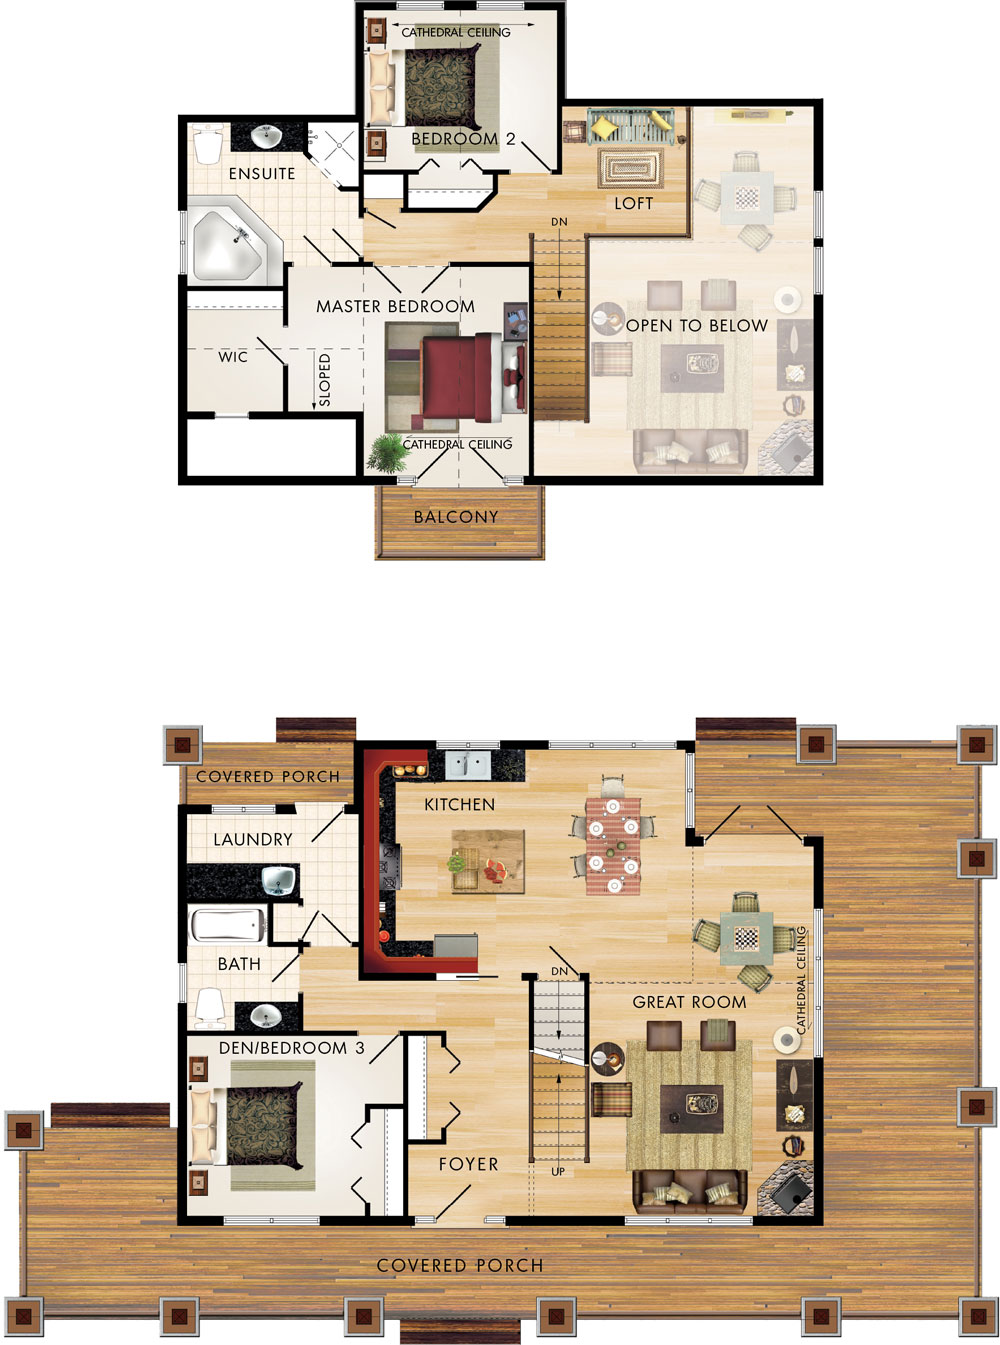 Beaver Homes and Cottages Limberlost – Beaver Homes Floor Plans